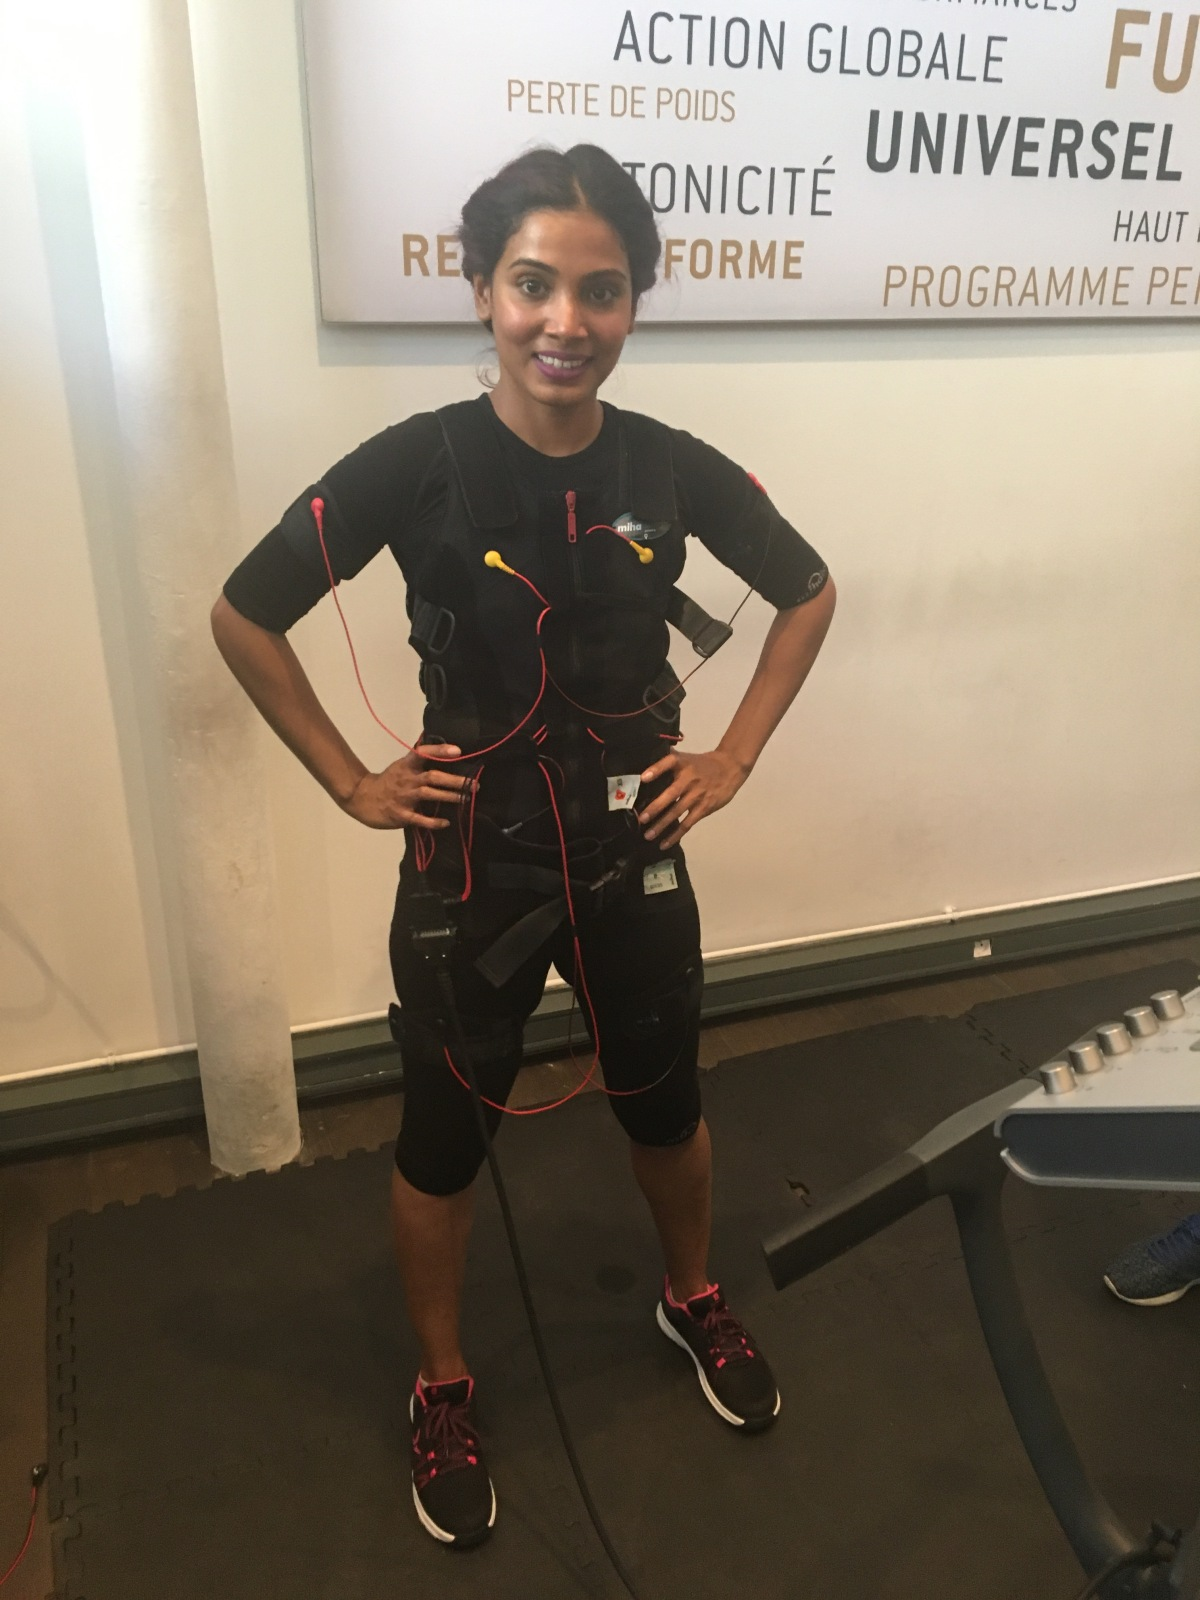 I tried the Electrical Muscle Simulation (EMS)workout.